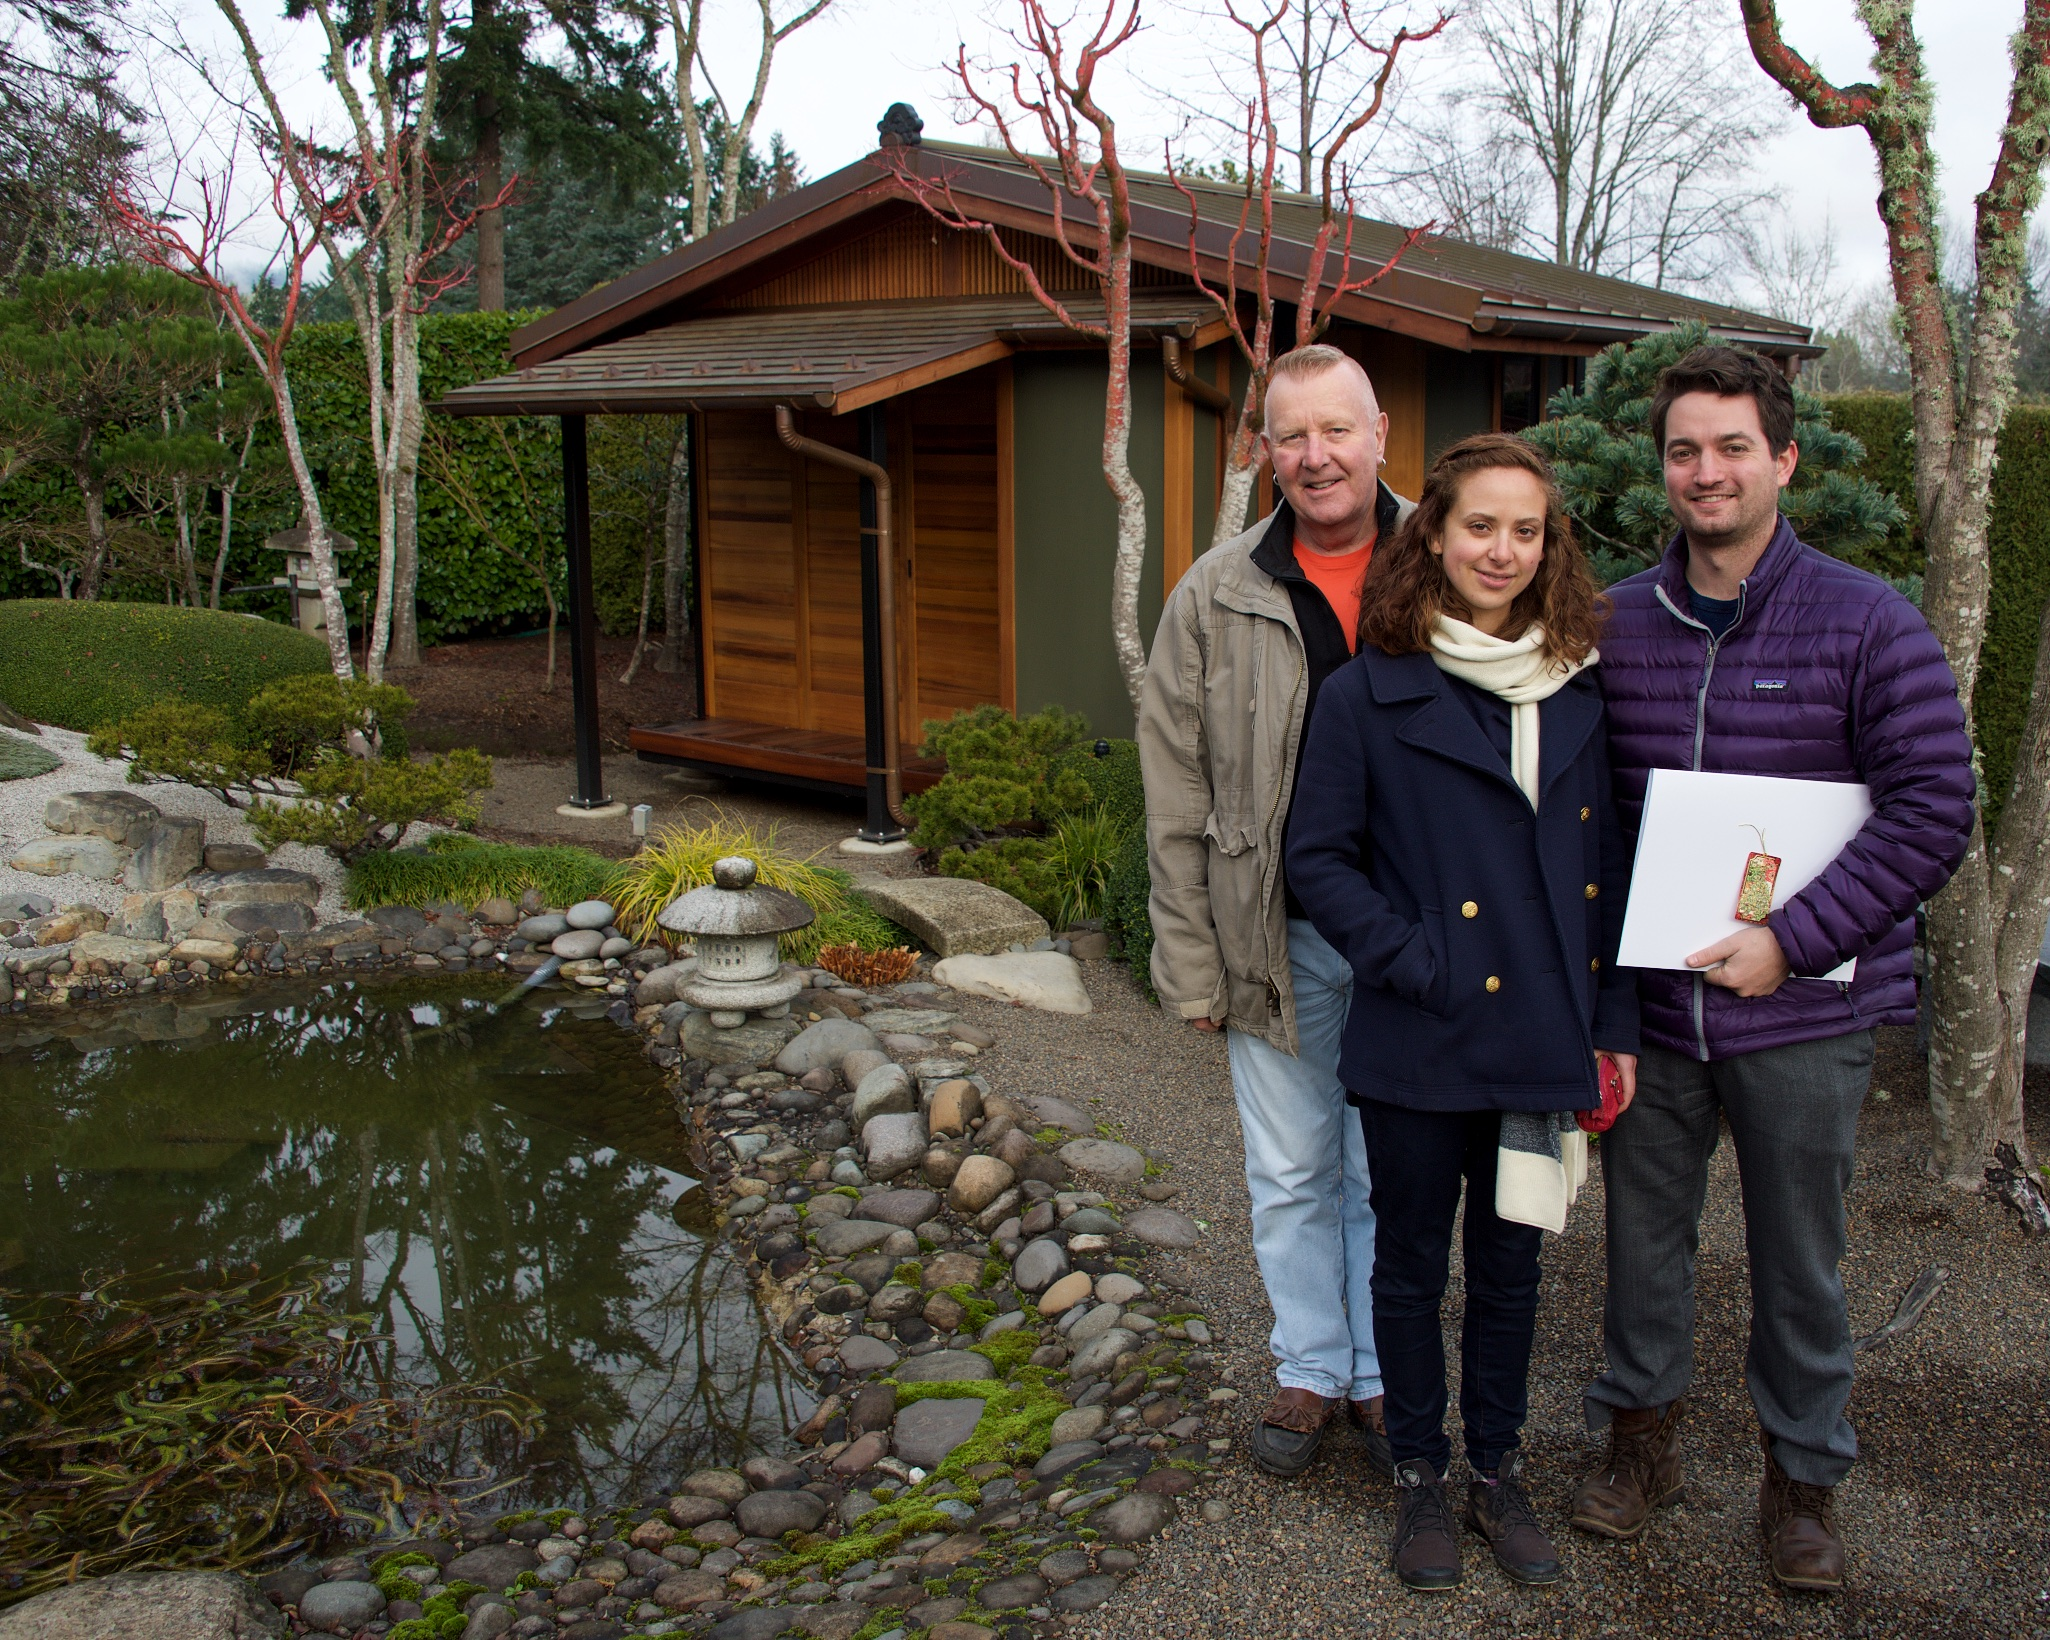 Bill Cook, Hannah Smith-Drelich, and Martin House, December 2015.